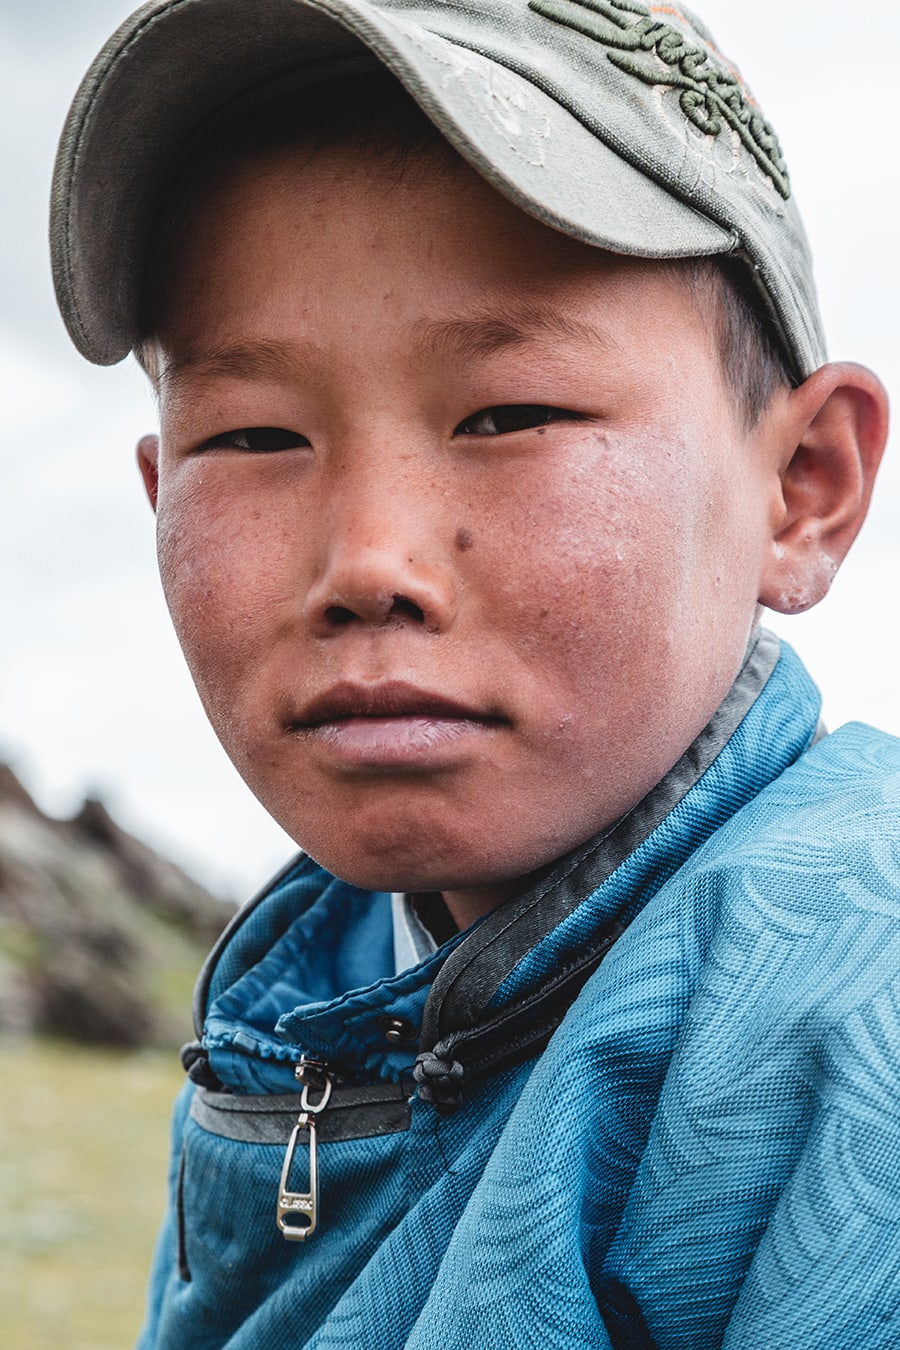 A young sheep herder in Bayan Ulgii province, western Mongolia.